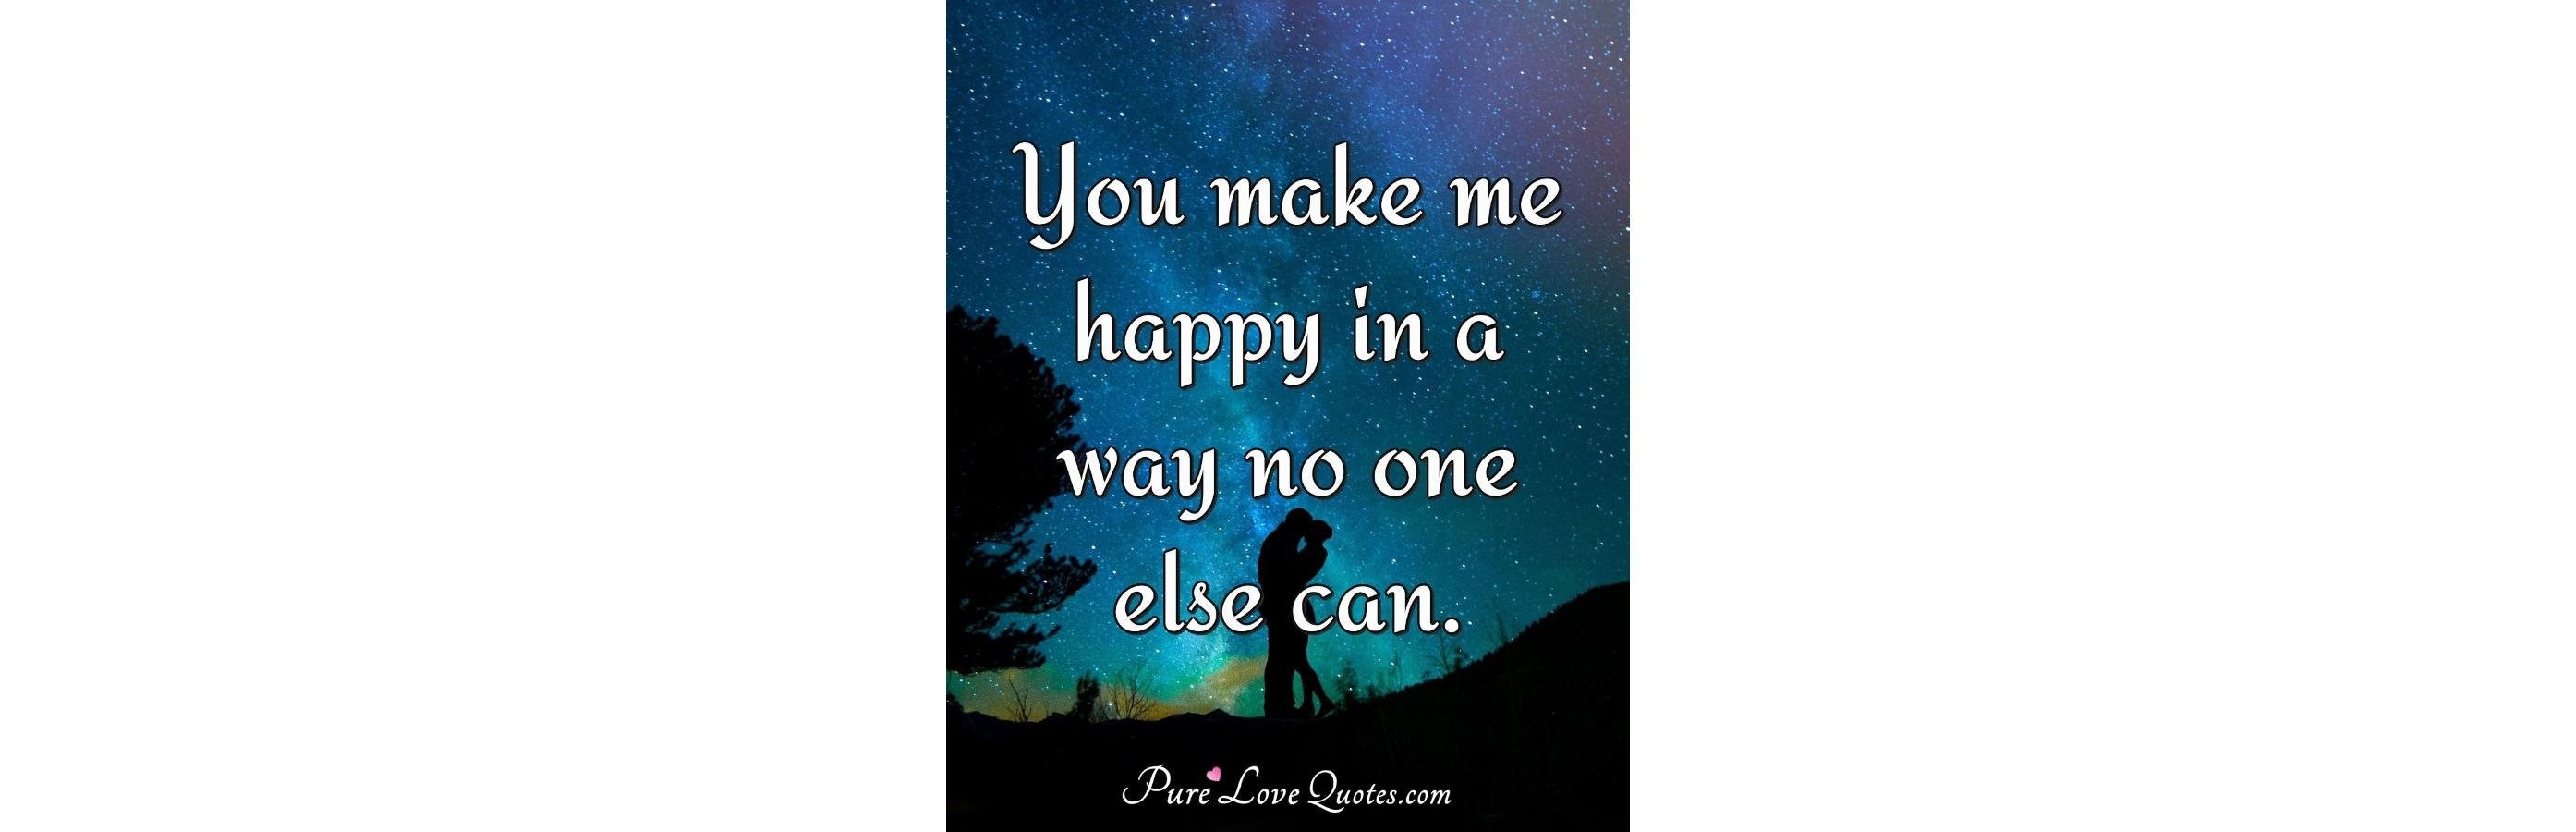 You Make Me Happy In A Way No One Else Can Purelovequotes